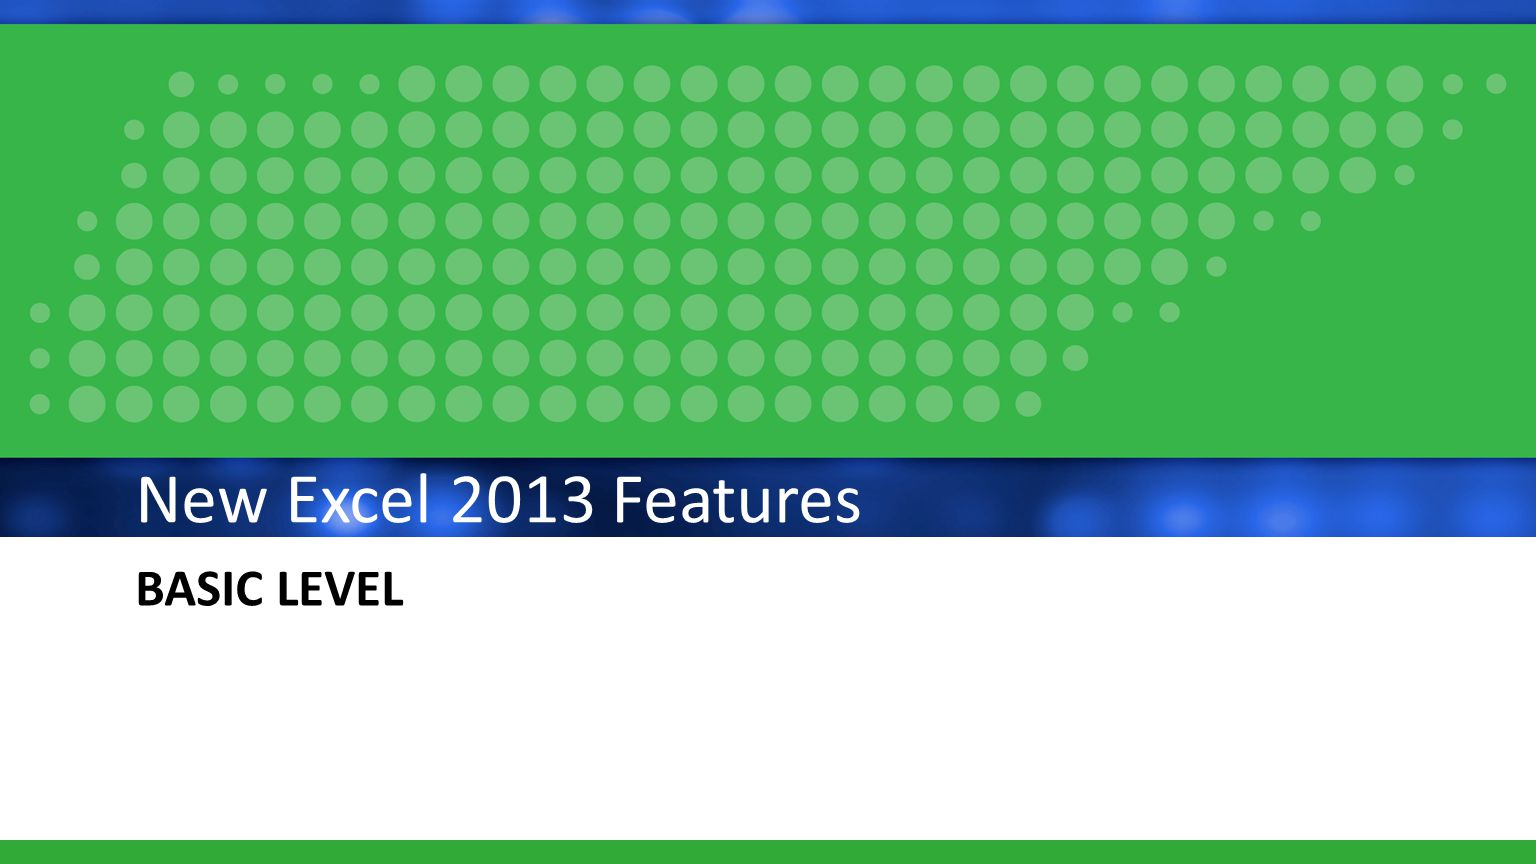 BASIC LEVEL New Excel 2013 Features